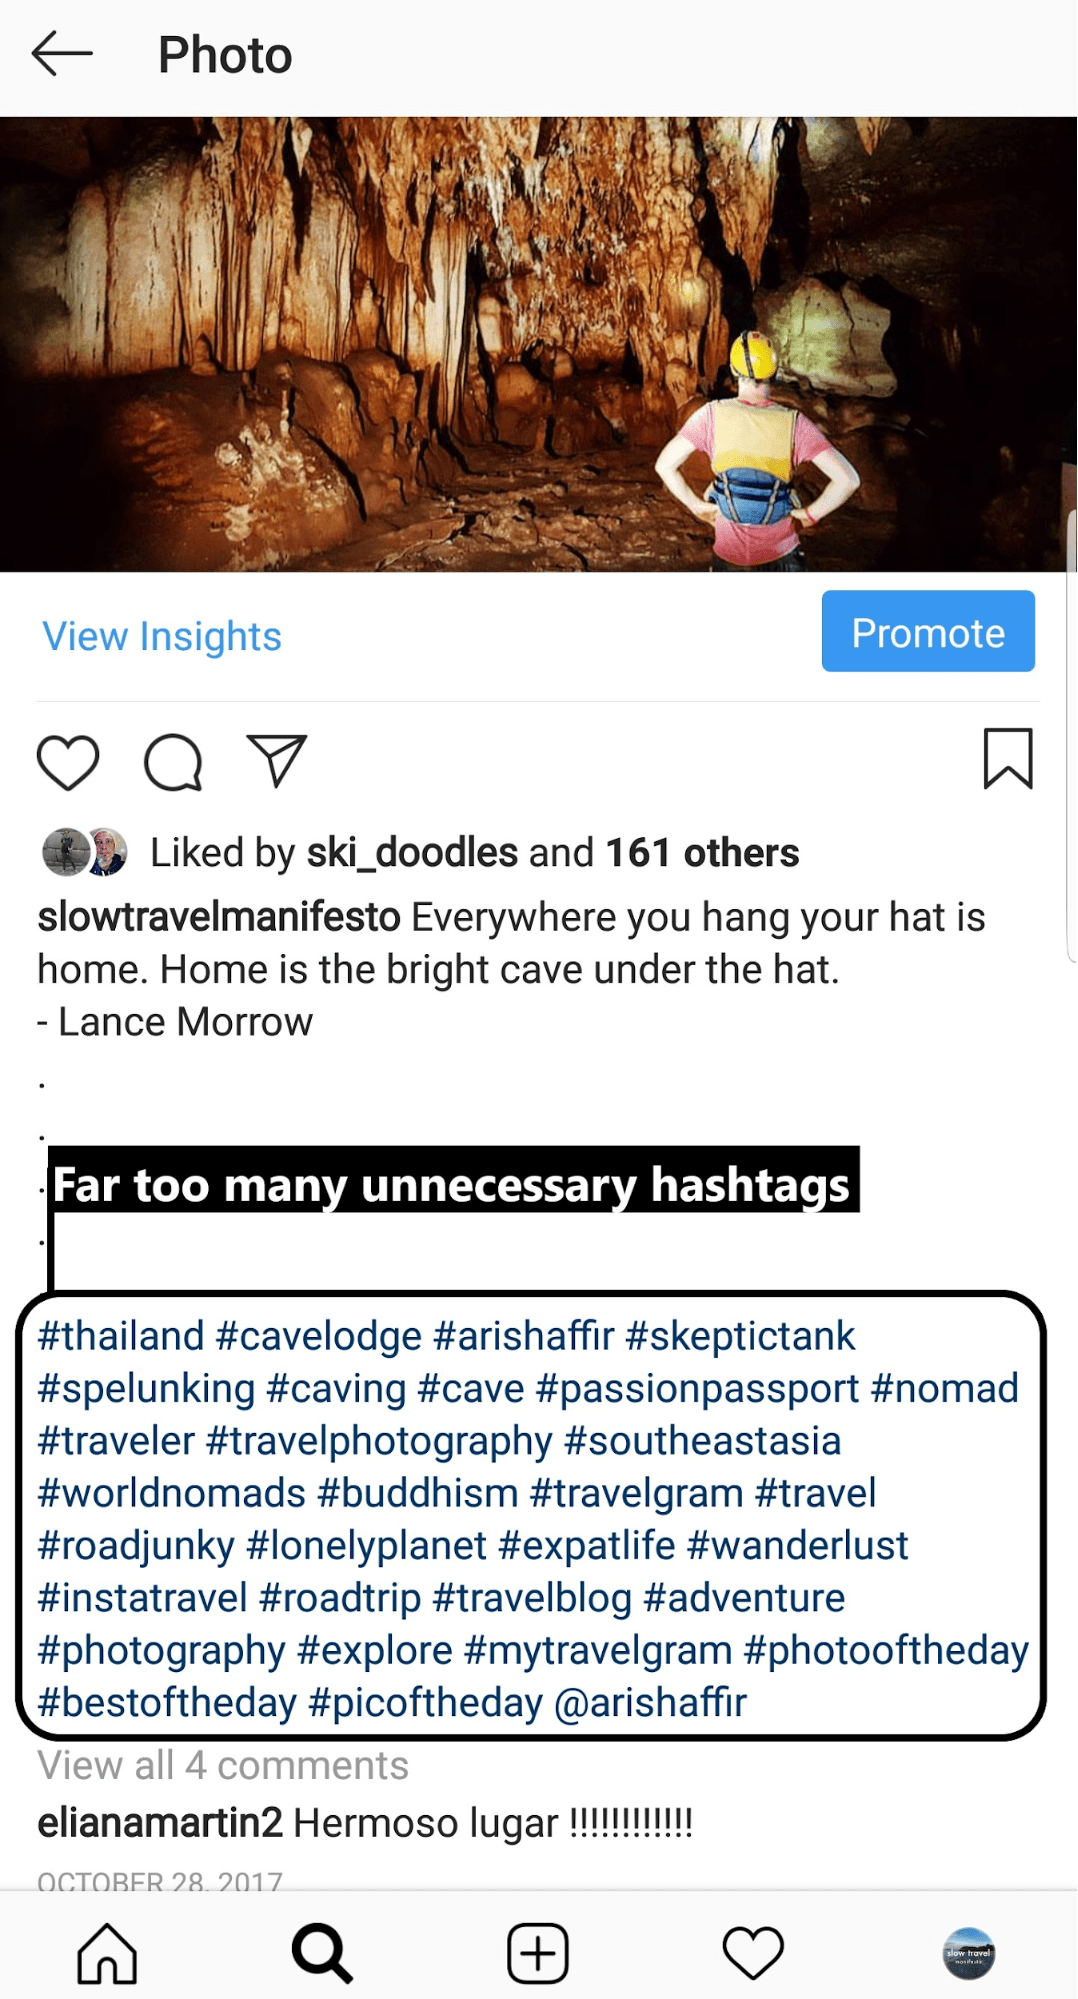 5 Dos and 4 Don'ts of Instagram Hashtags in 2021